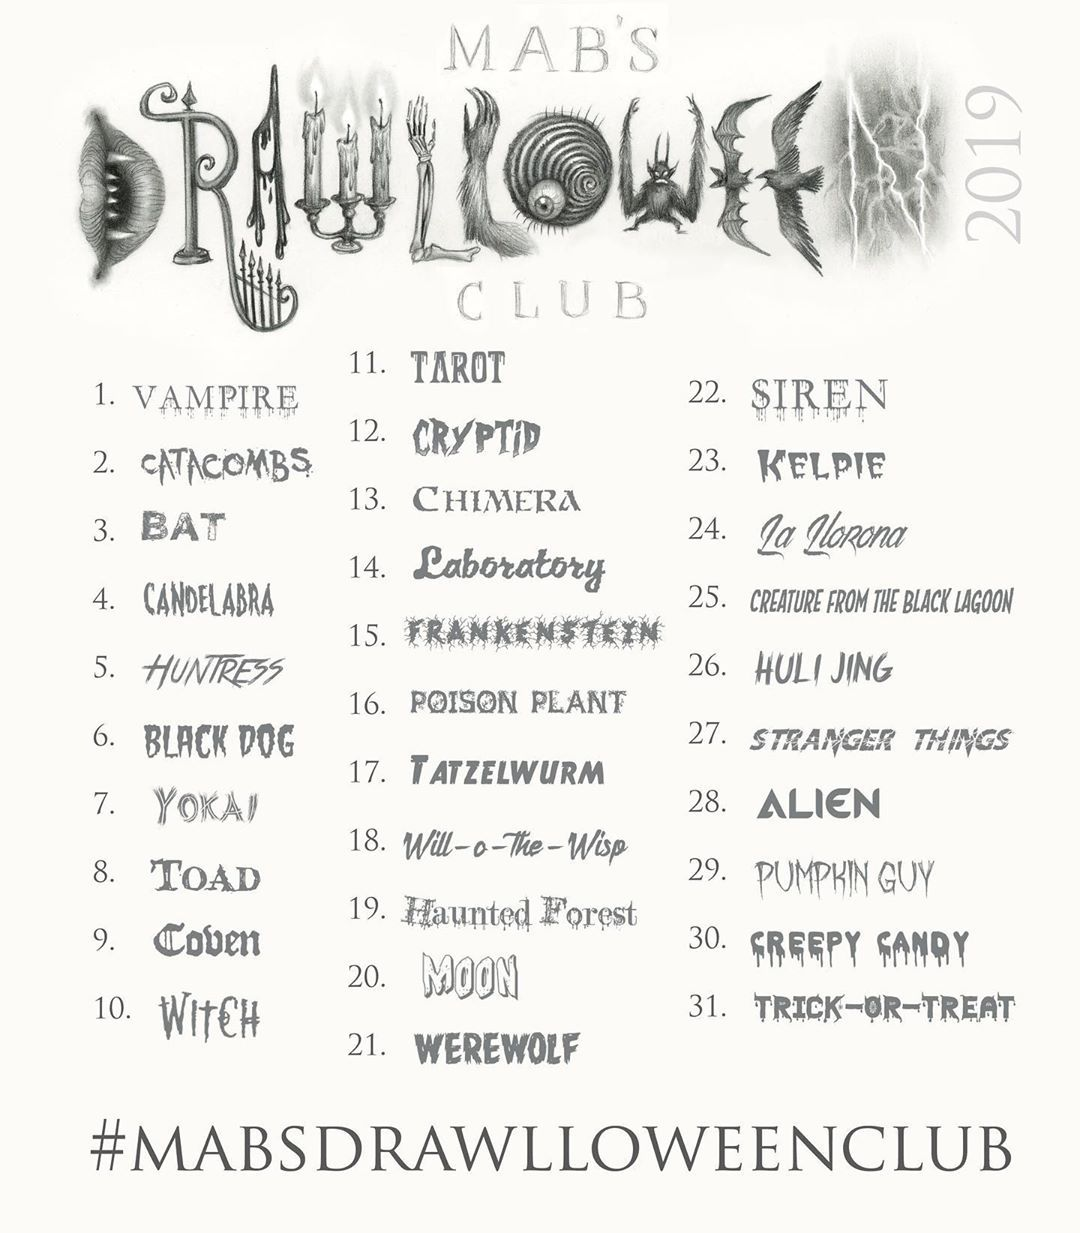 Mabsdrawlloweenclub 2019 Official Prompt List #drawingprompts